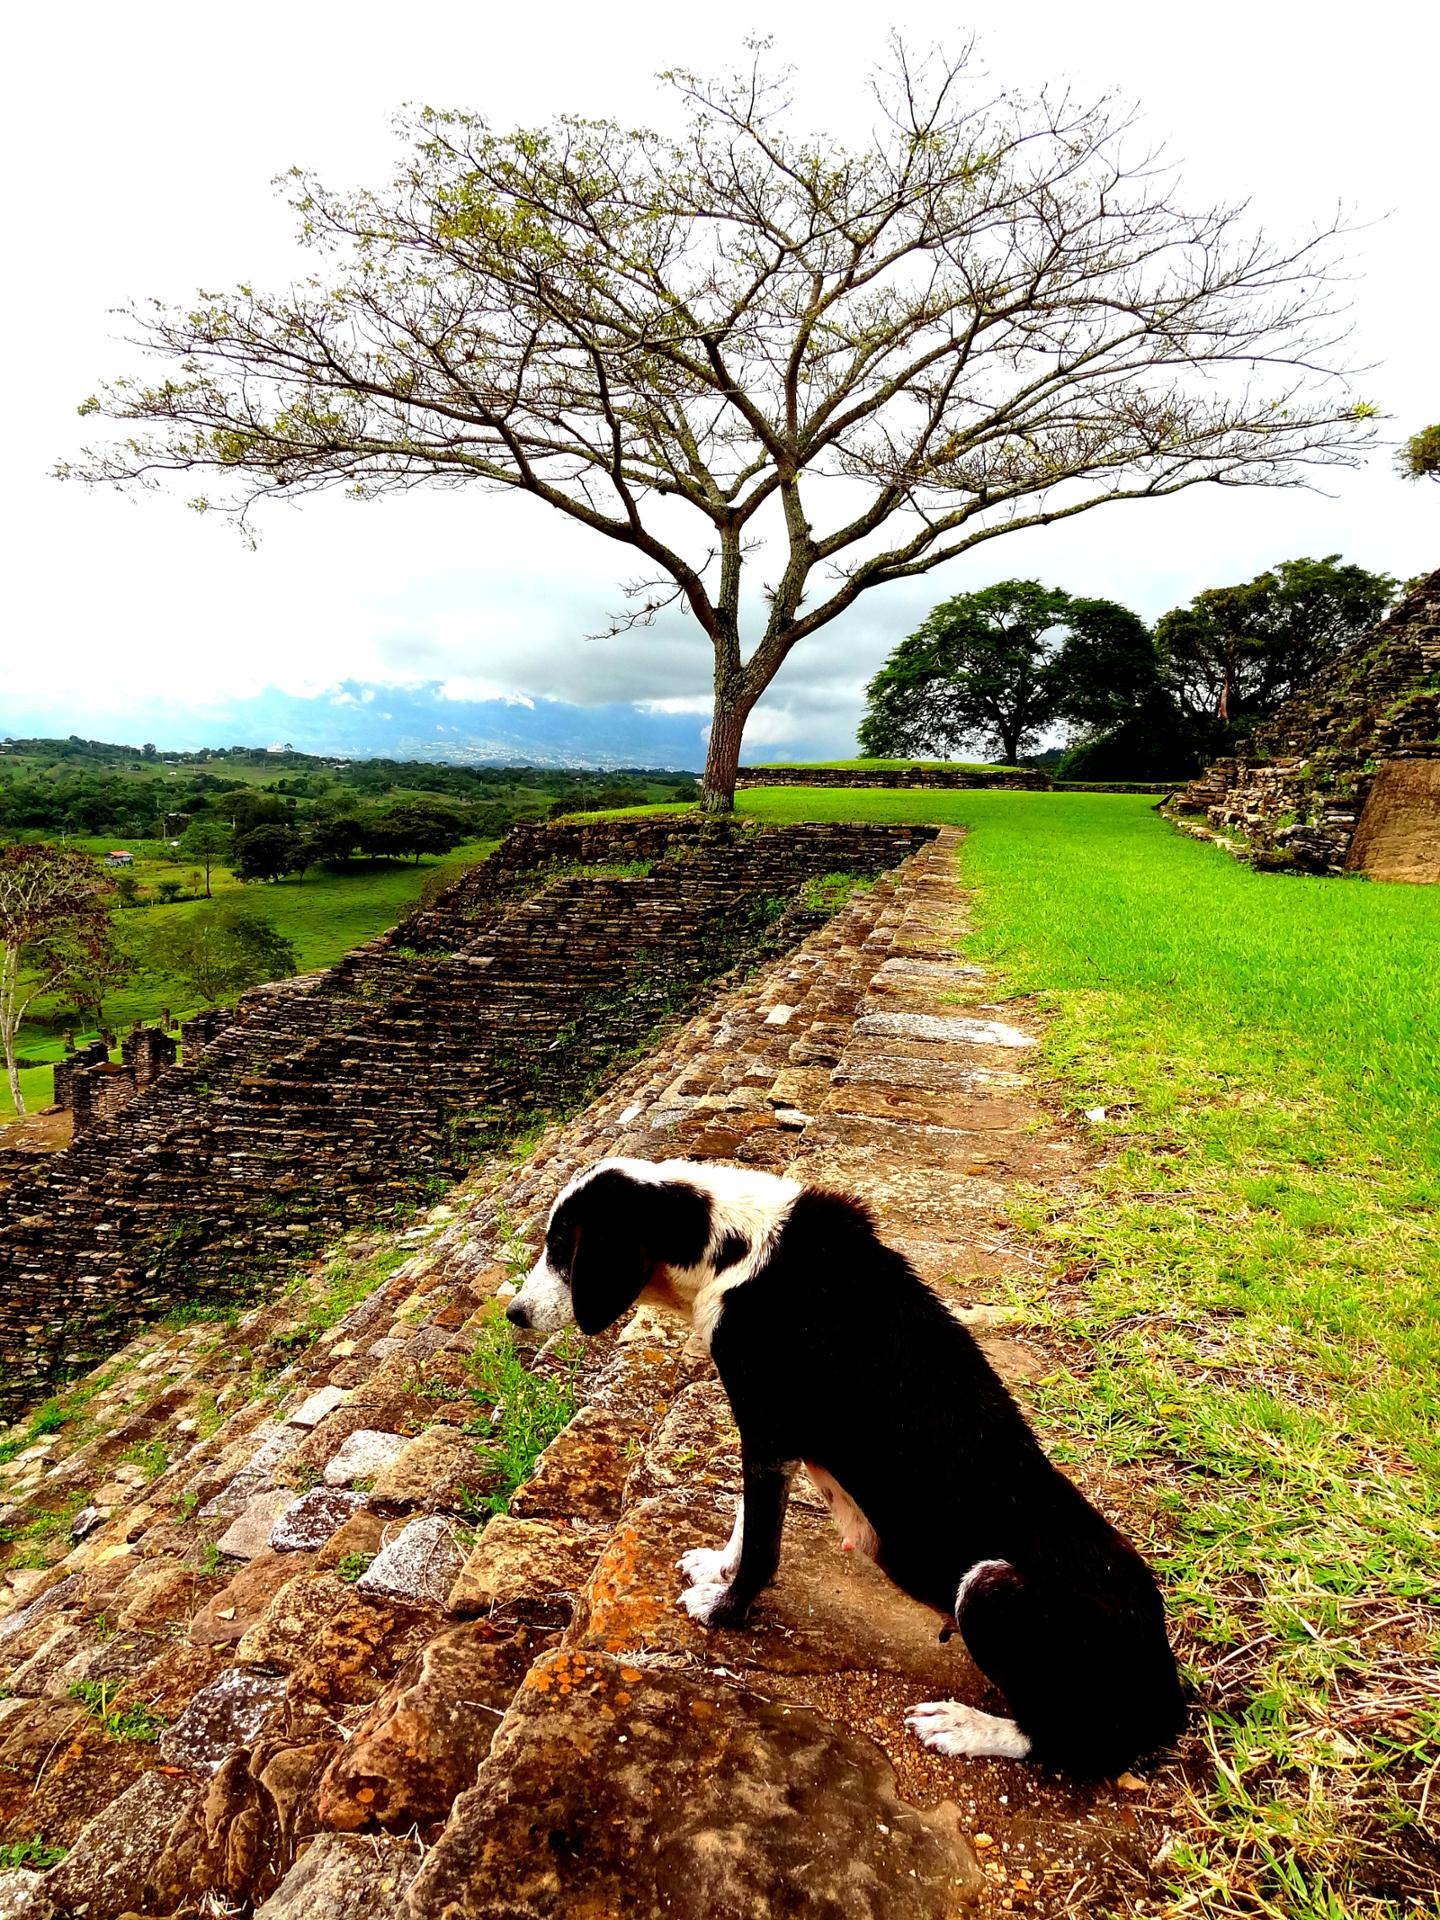 The Palenque dog